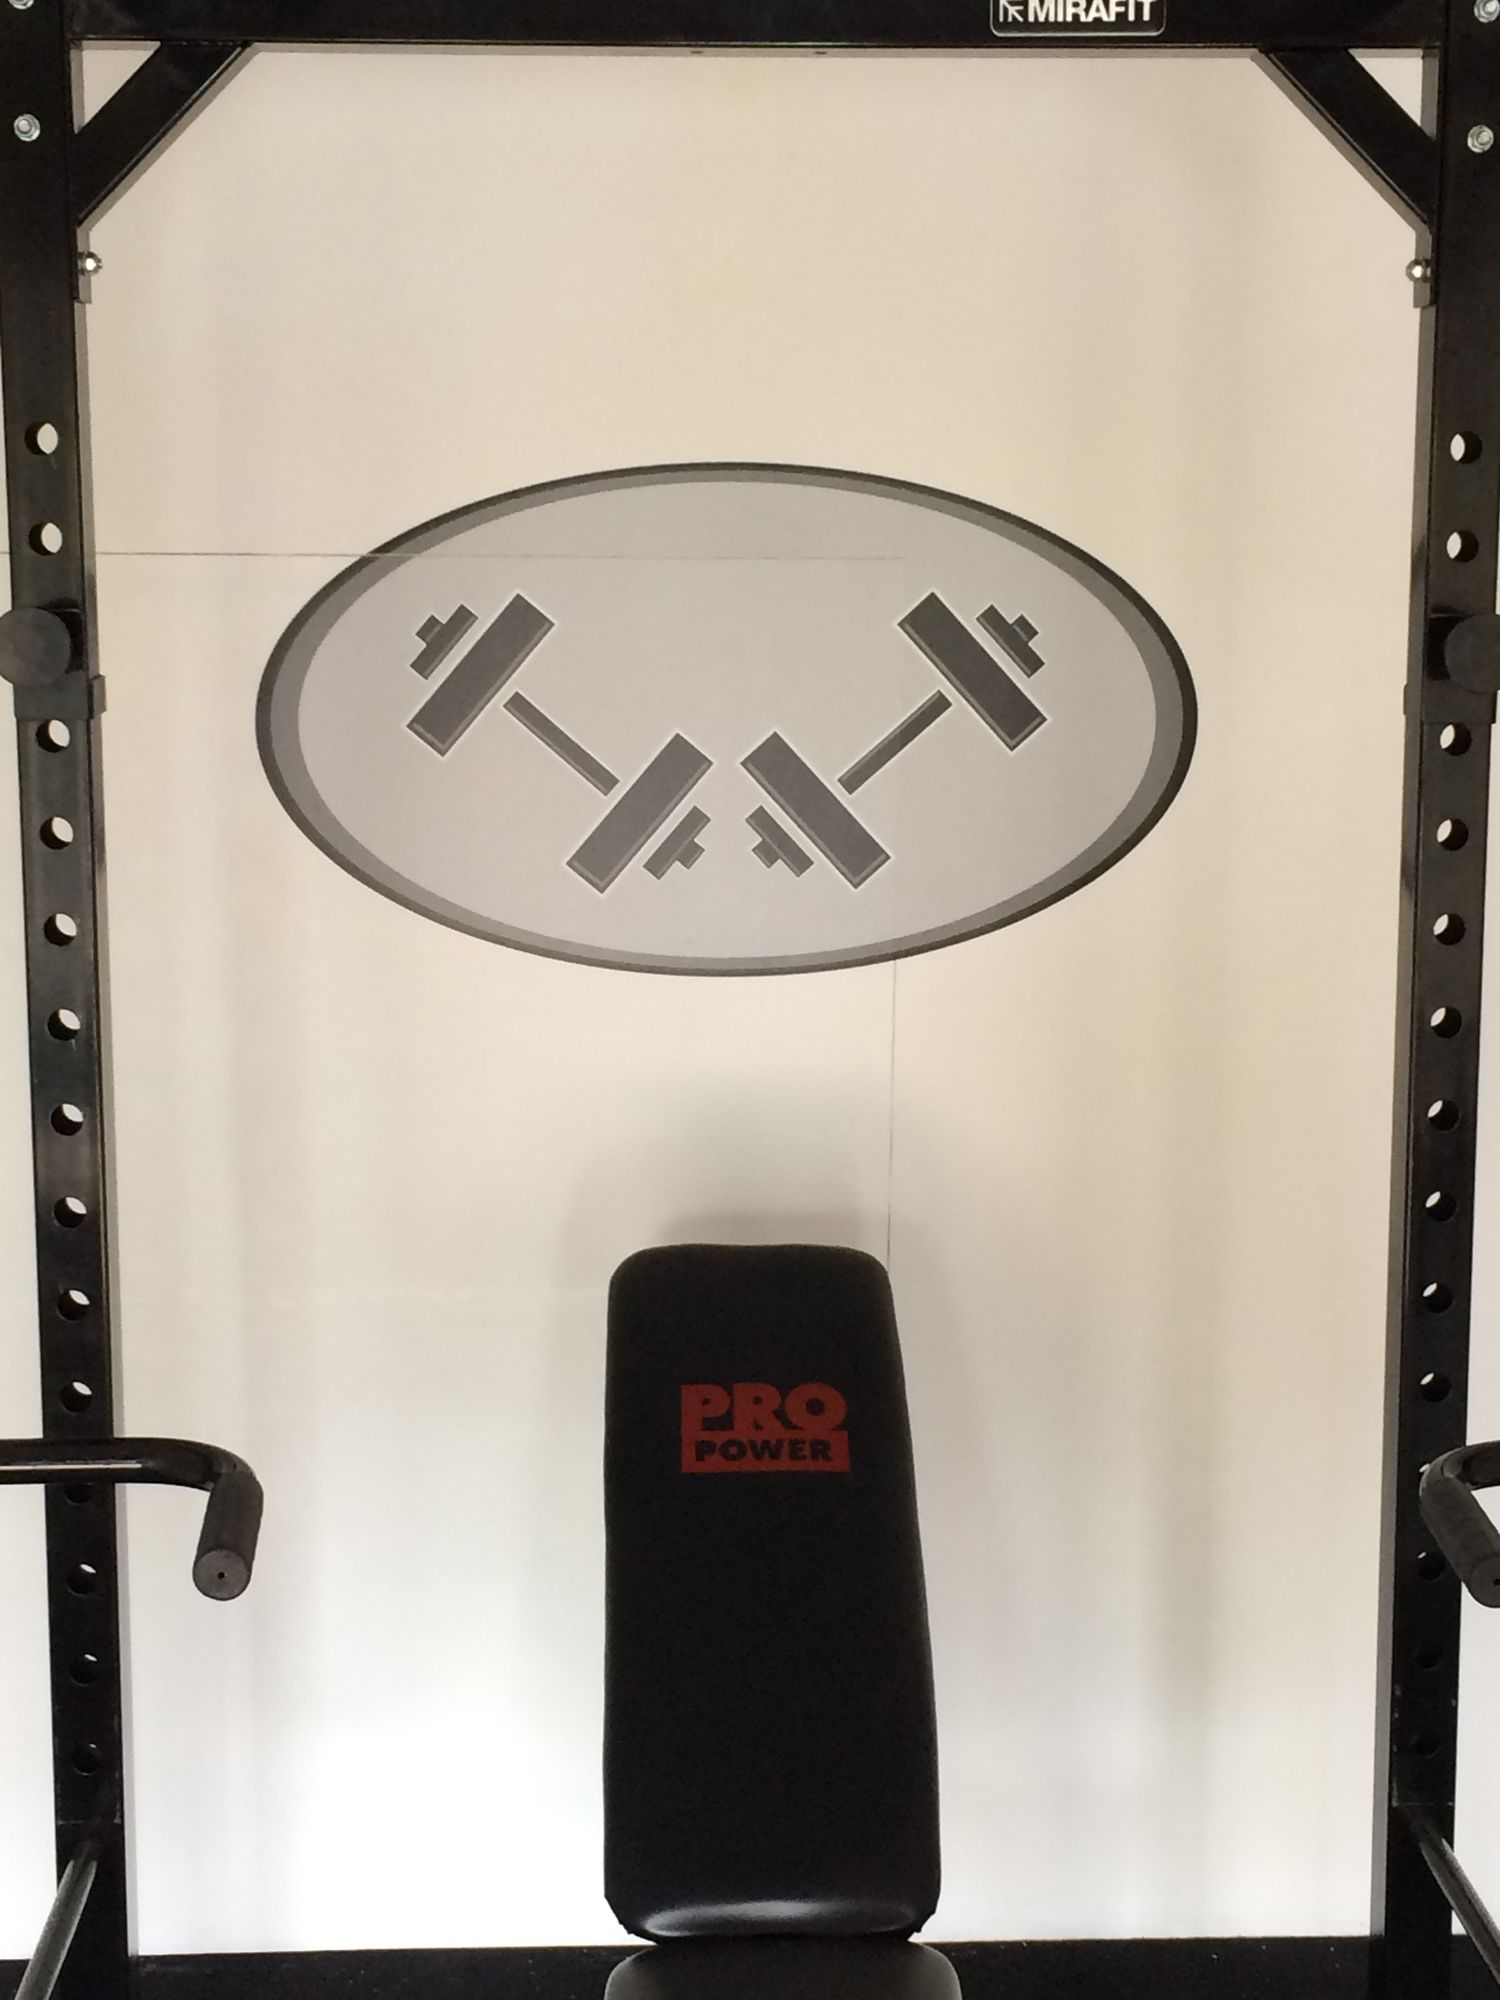 Recreation of existing fitness gym logo with a layered vinyl wall sticker